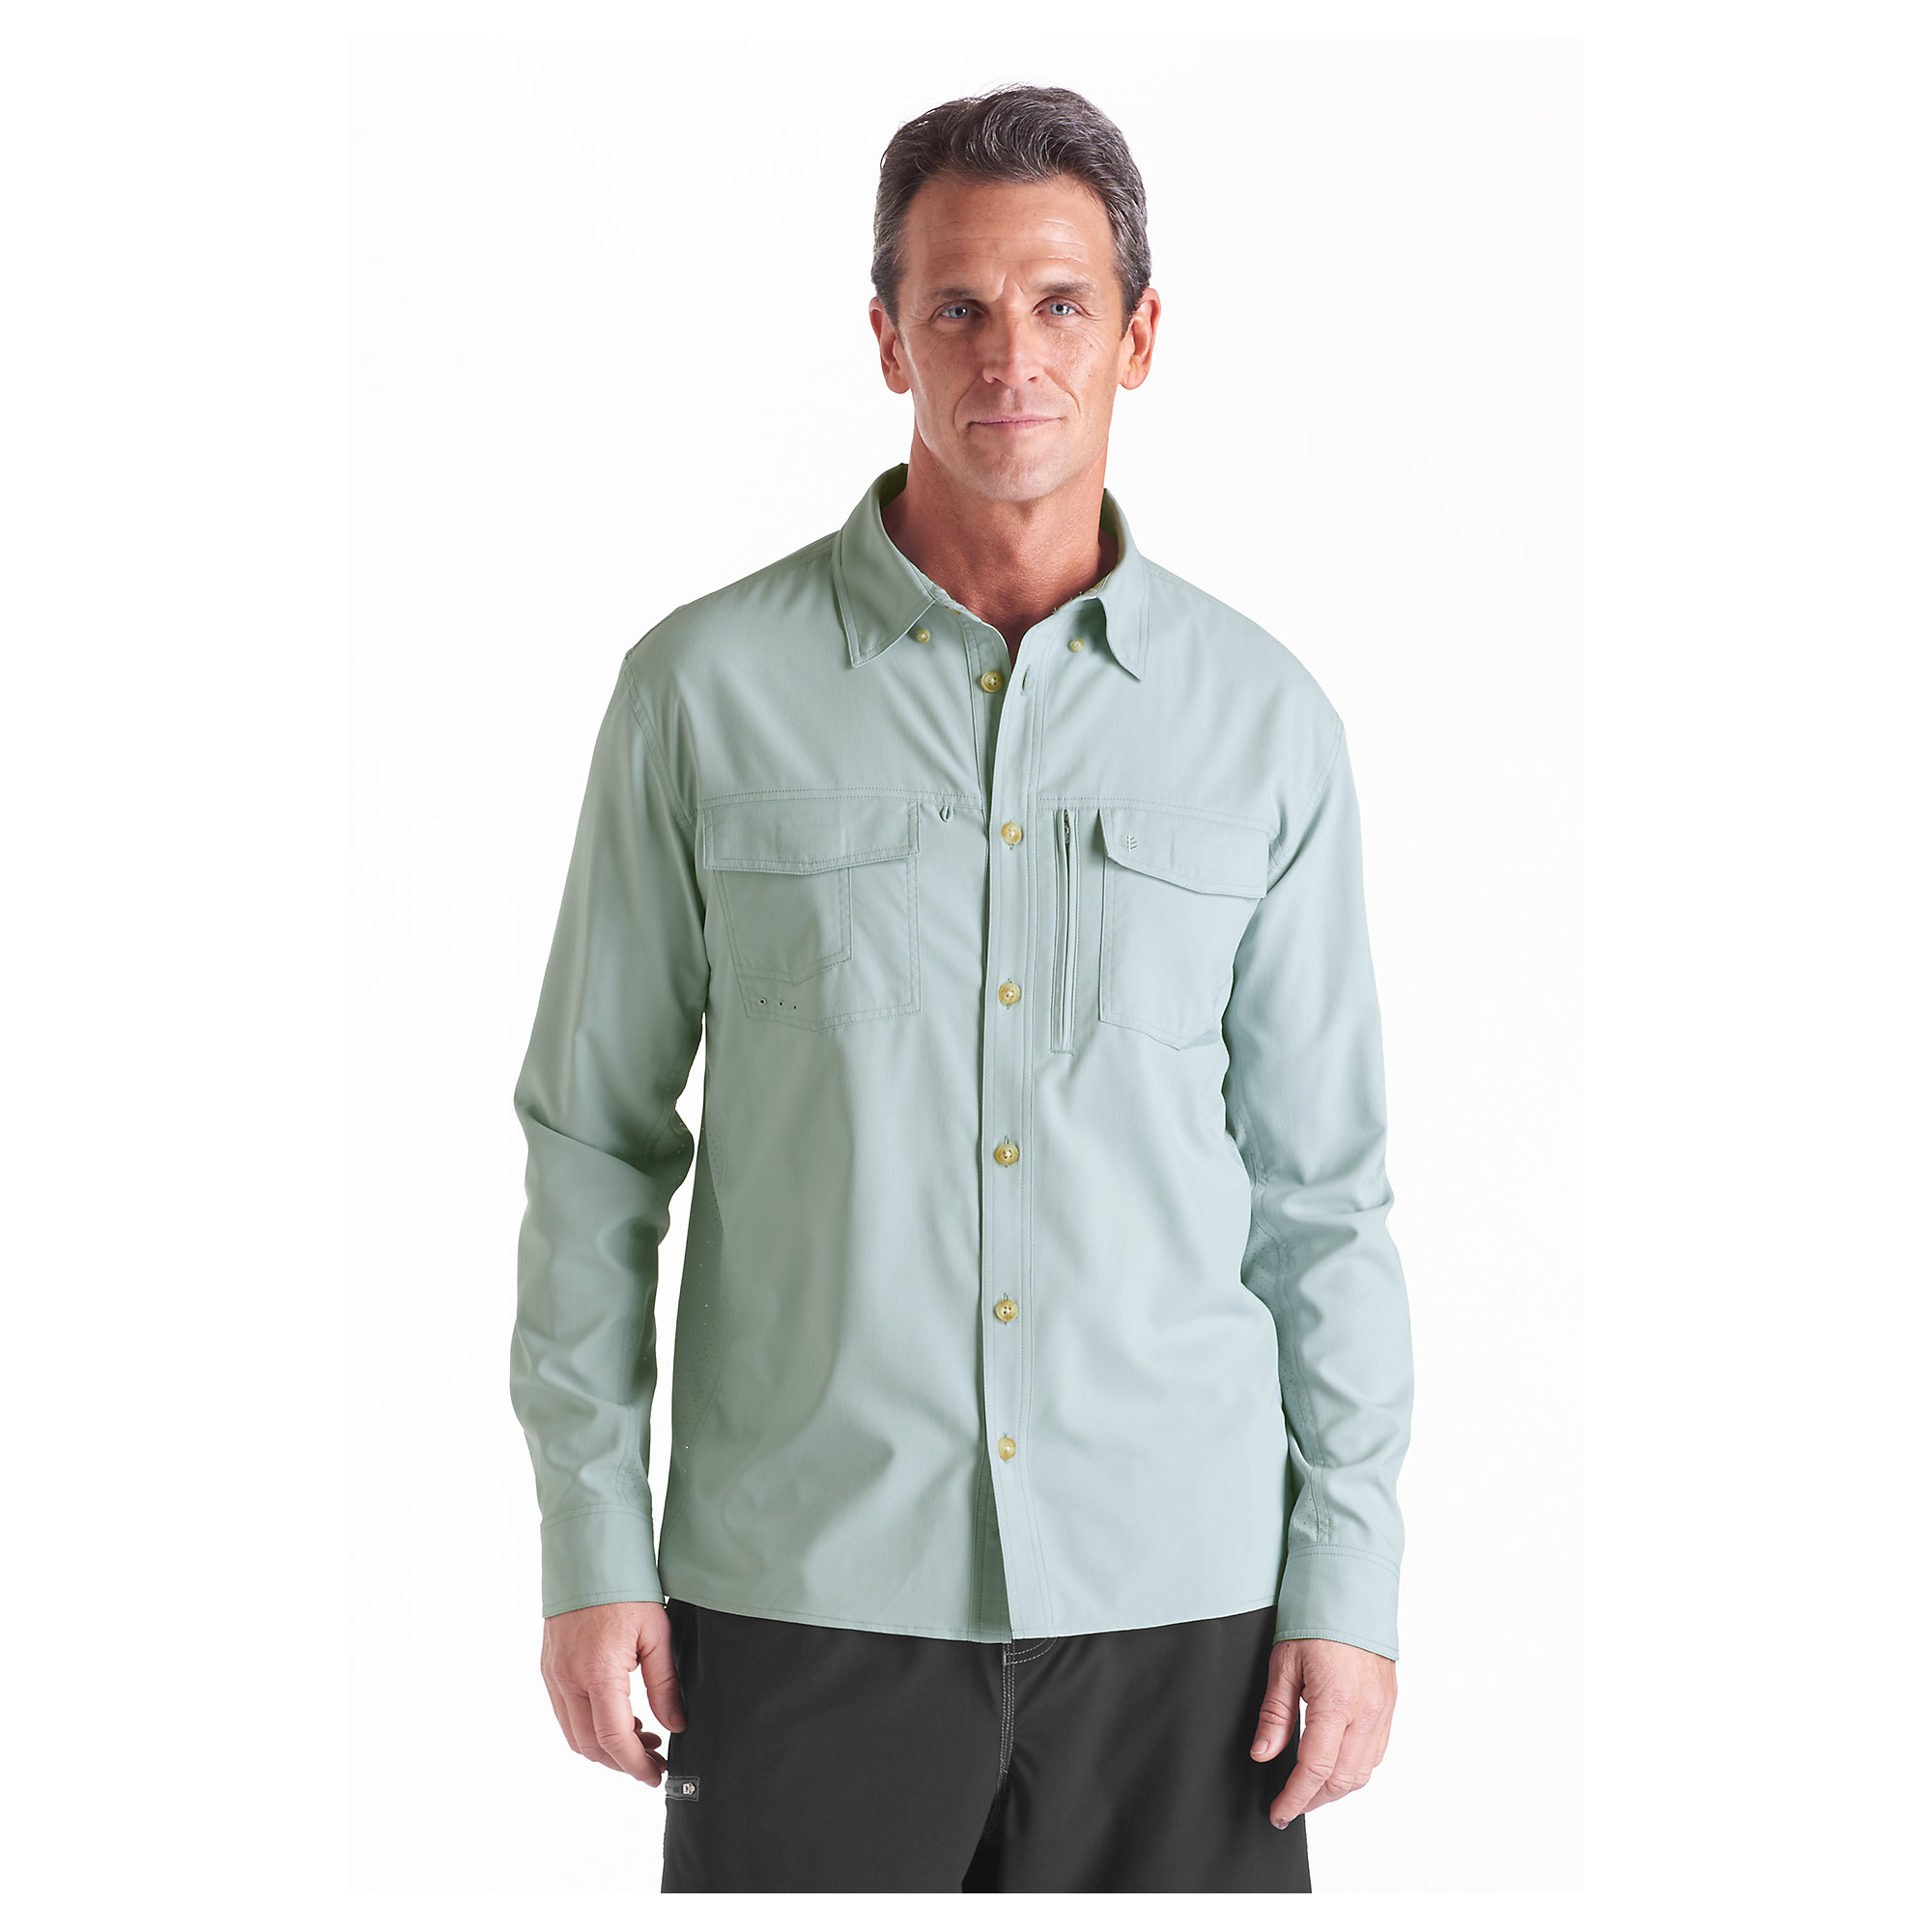 Coolibar upf 50 men 39 s fishing shirt sun protective ebay for Spf shirts for fishing